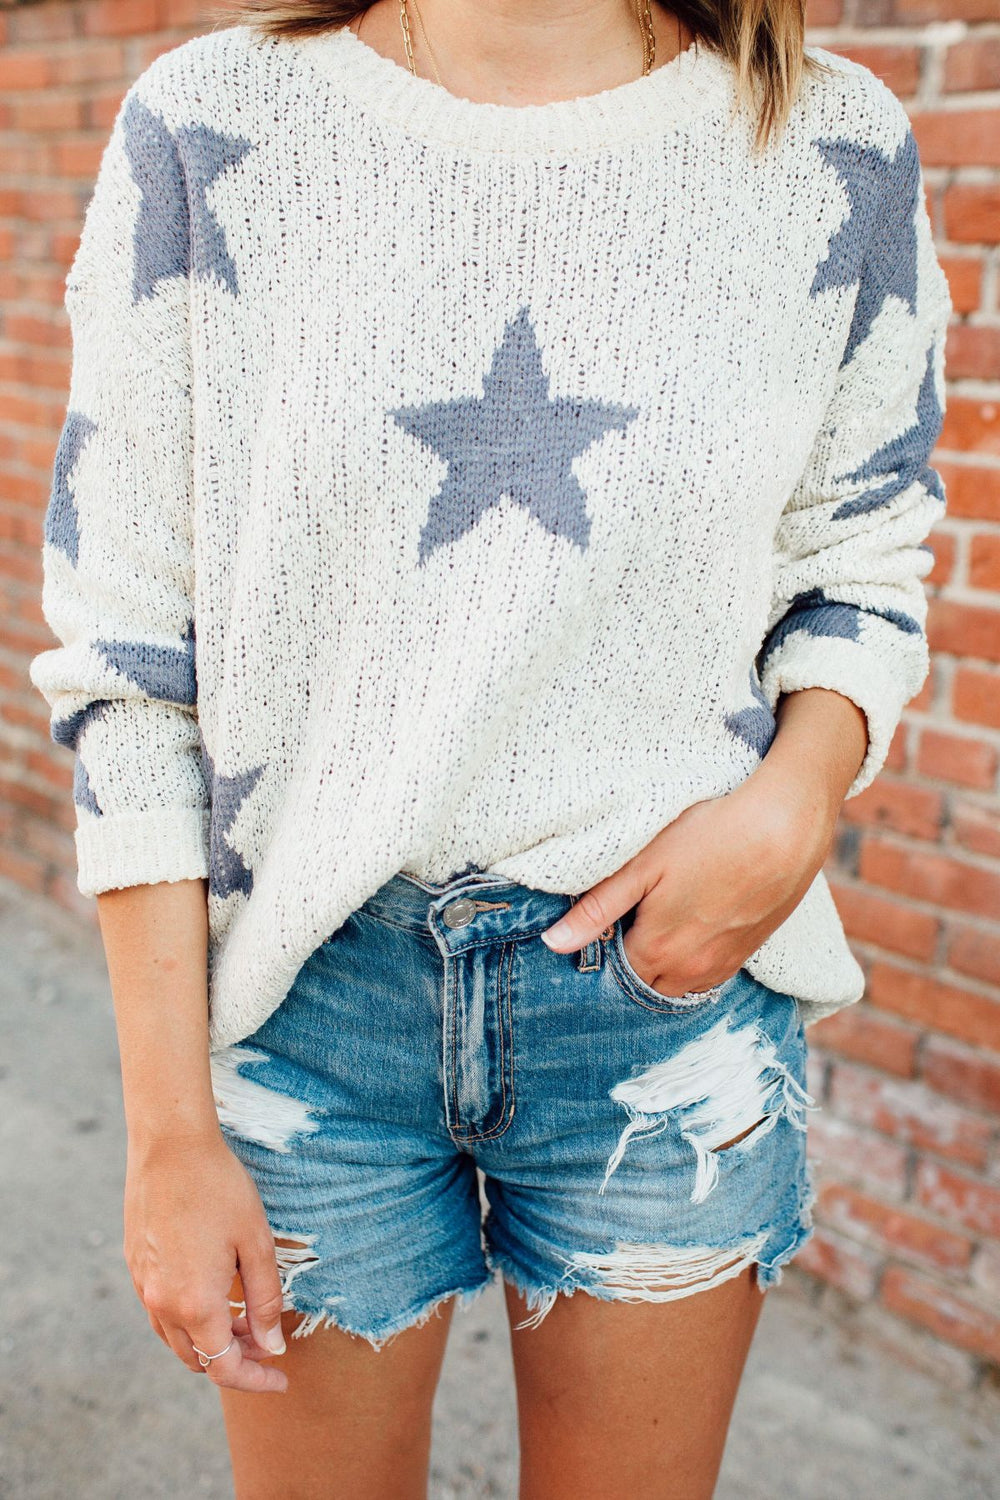 Indigo Star Sweater Inspired by Ashley from Twenties Girl Style